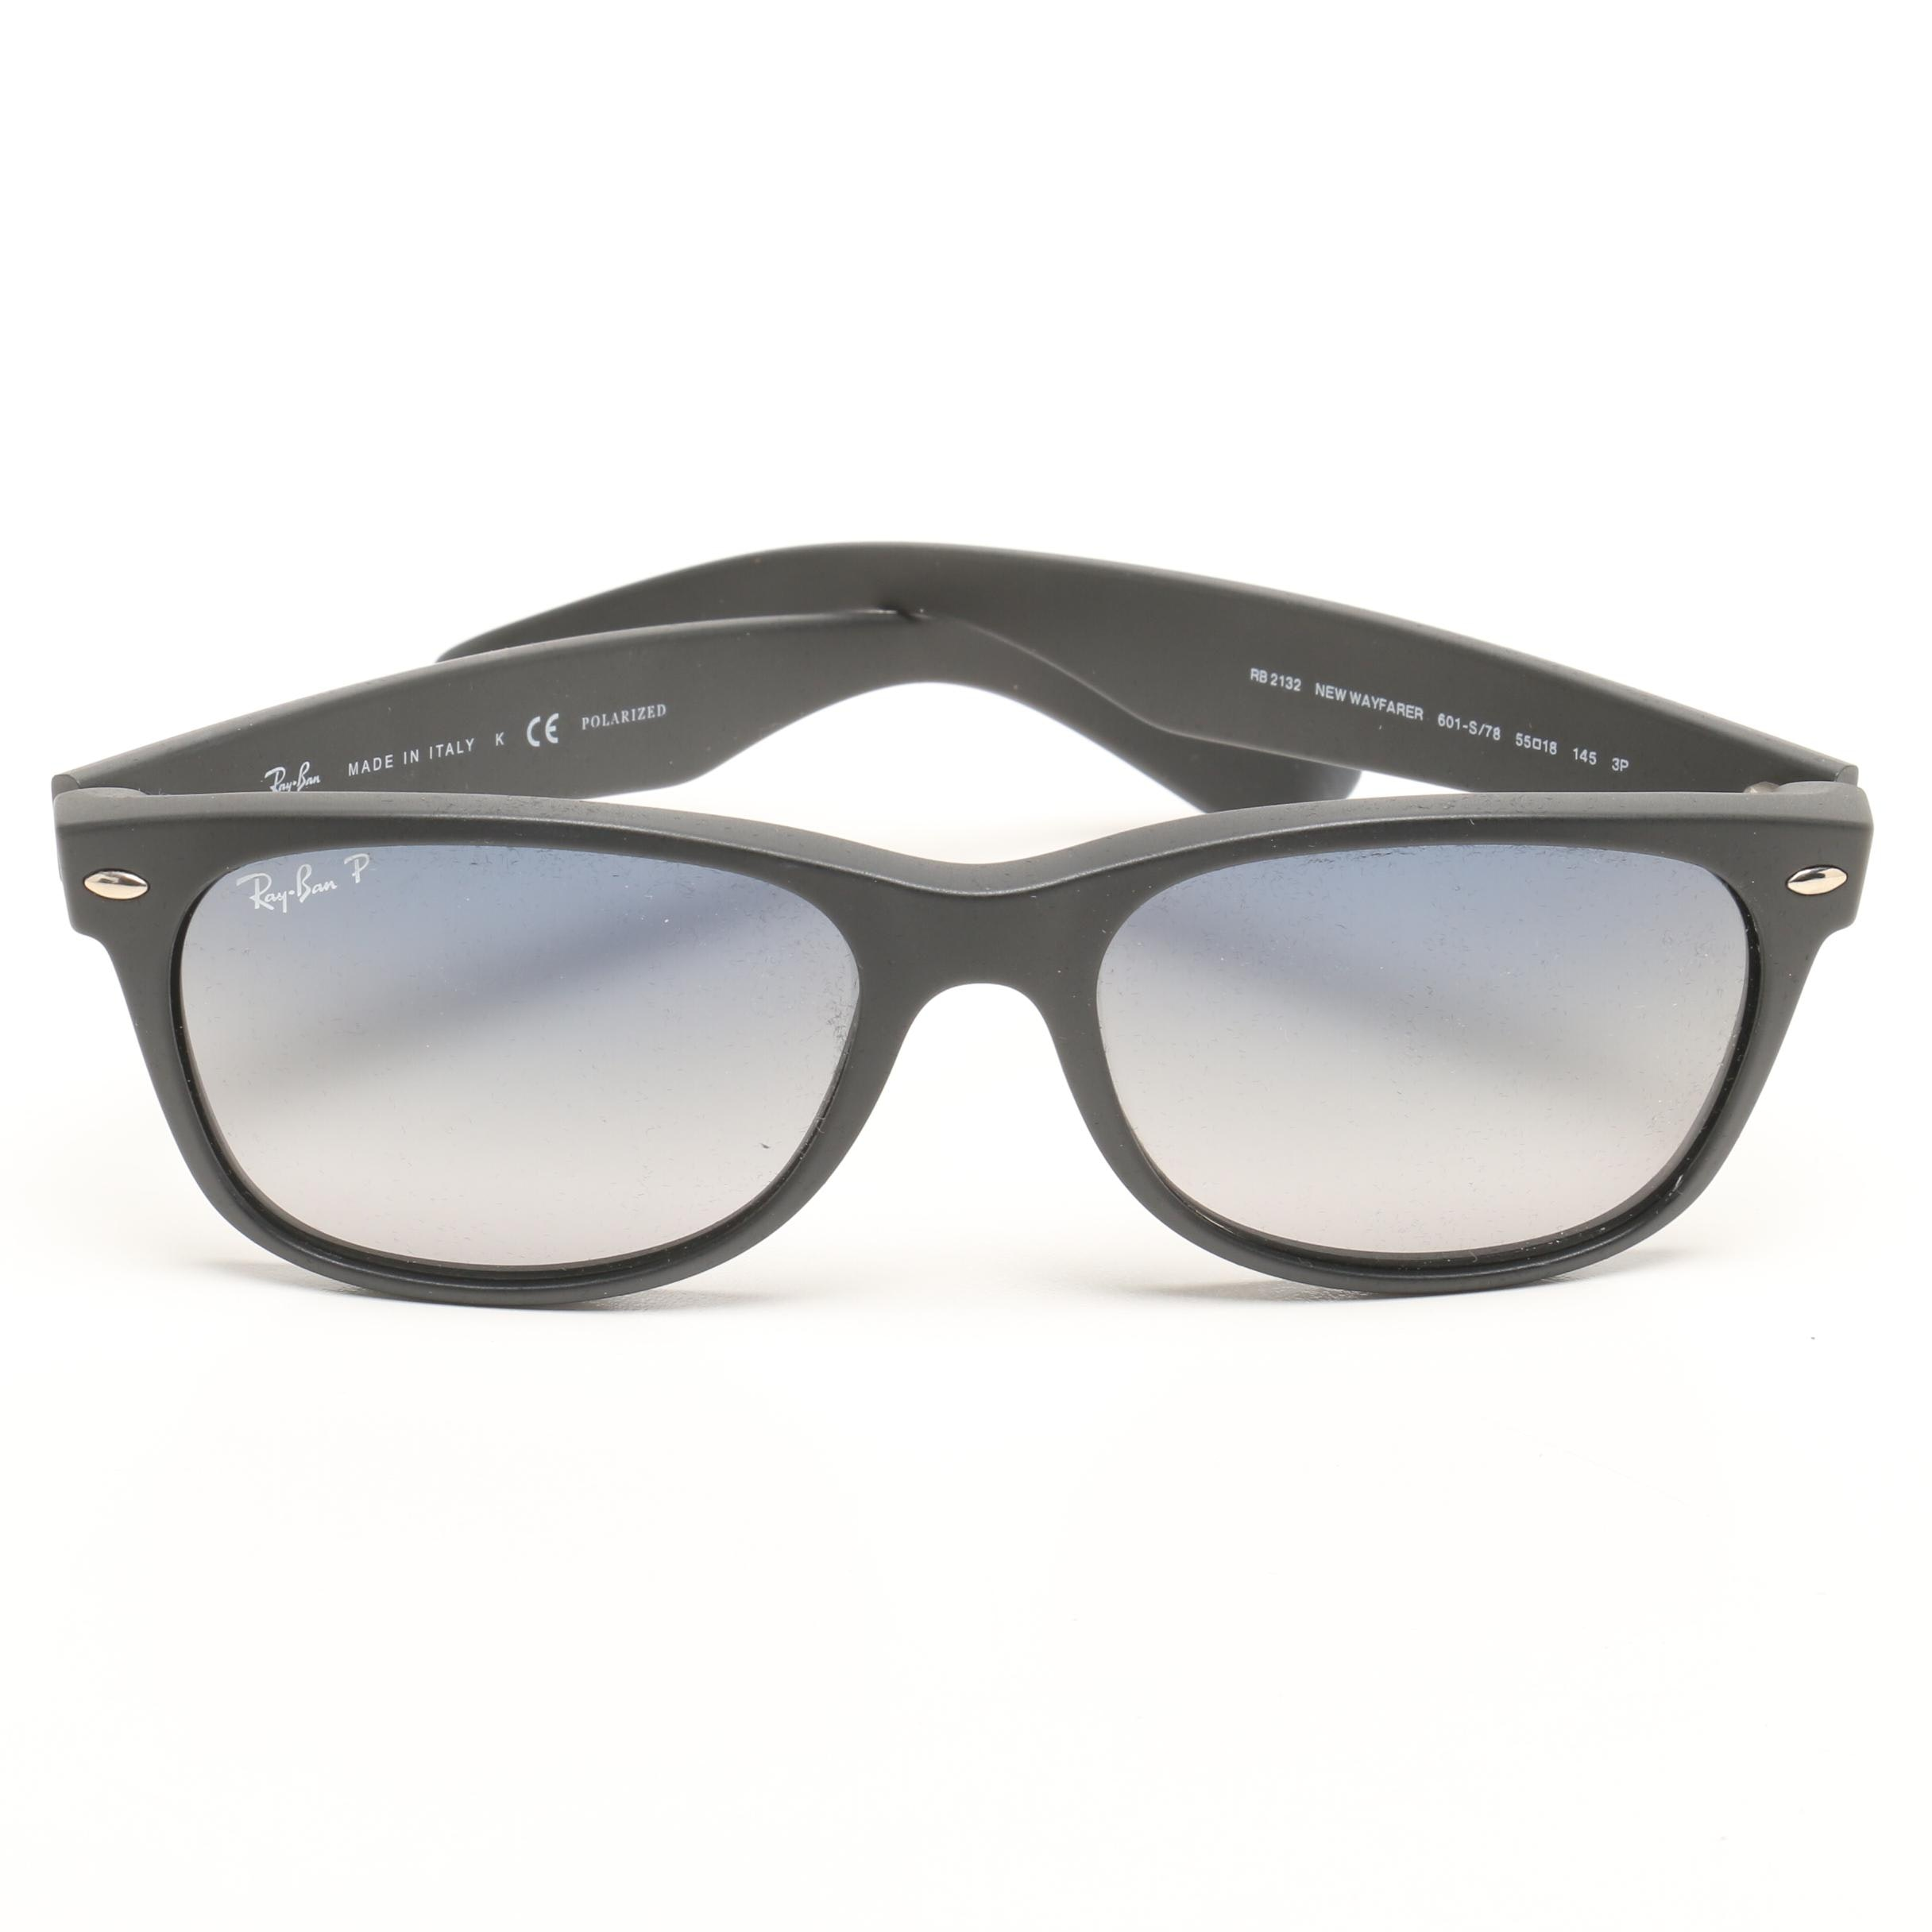 Ray-Ban RB2132 New Wayfarer Polarized Sunglasses with Case, Made in Italy